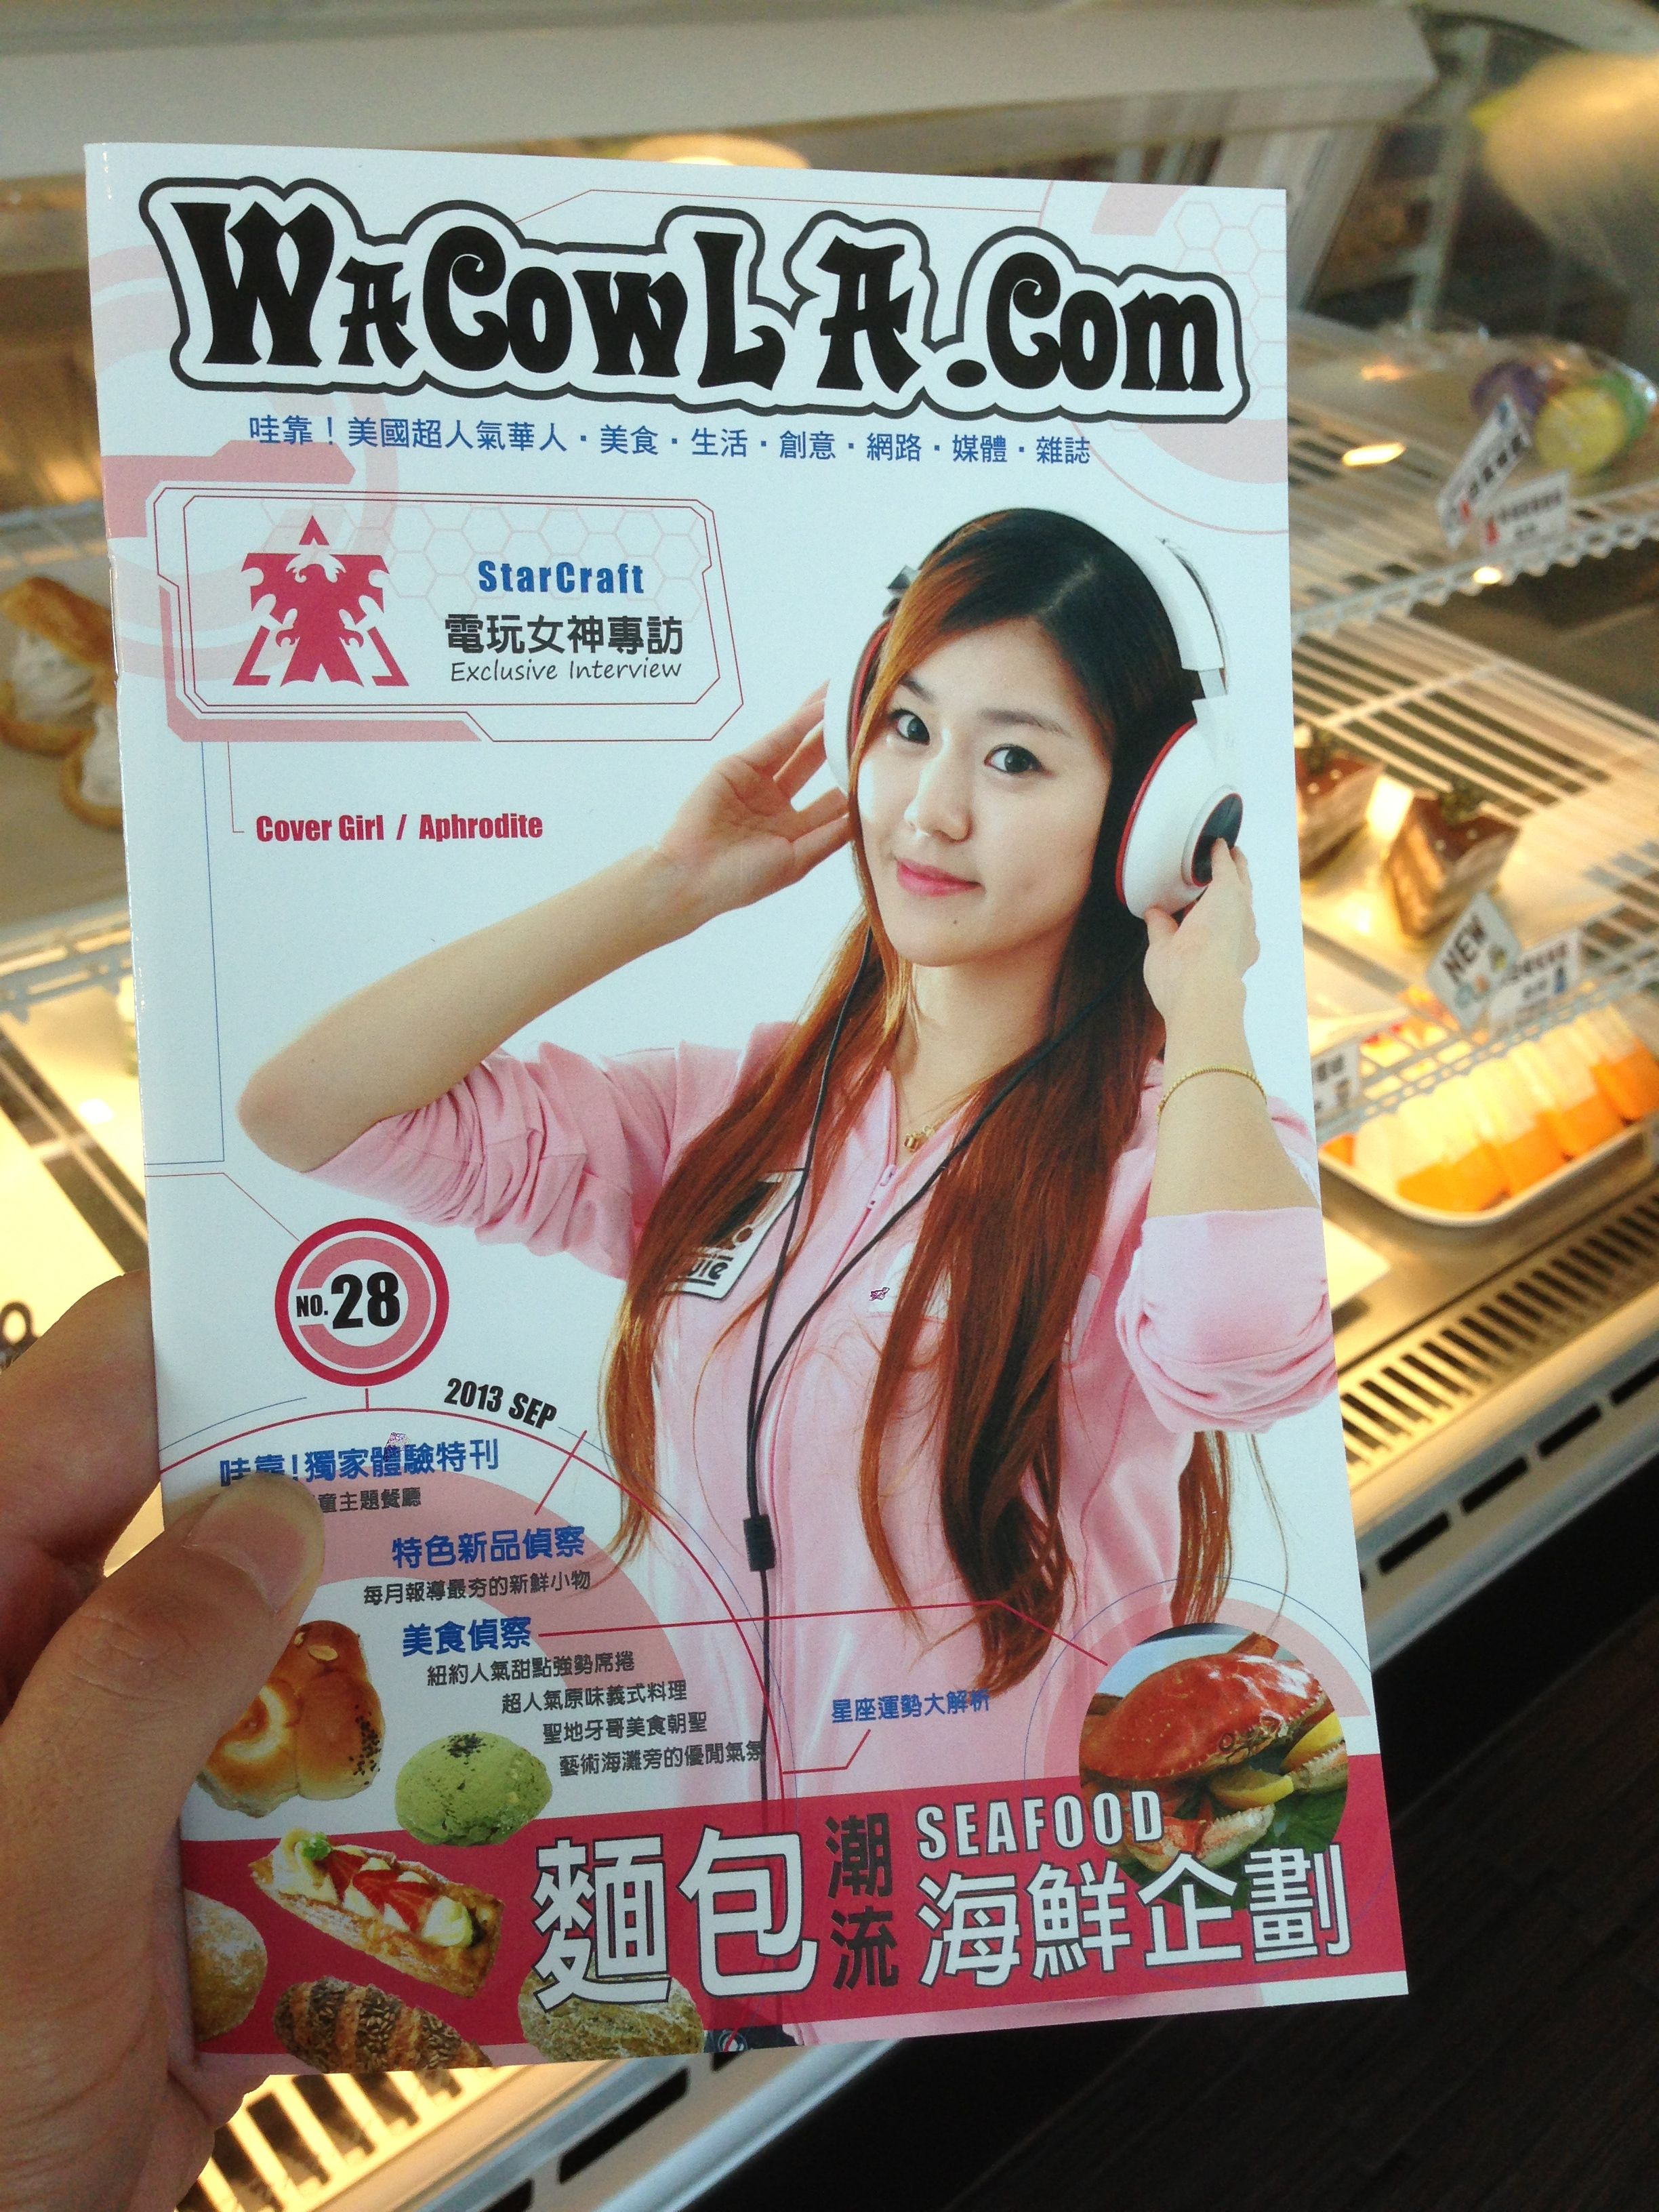 WACowLA SEP issue is out !! SEAFOOD Recon!!